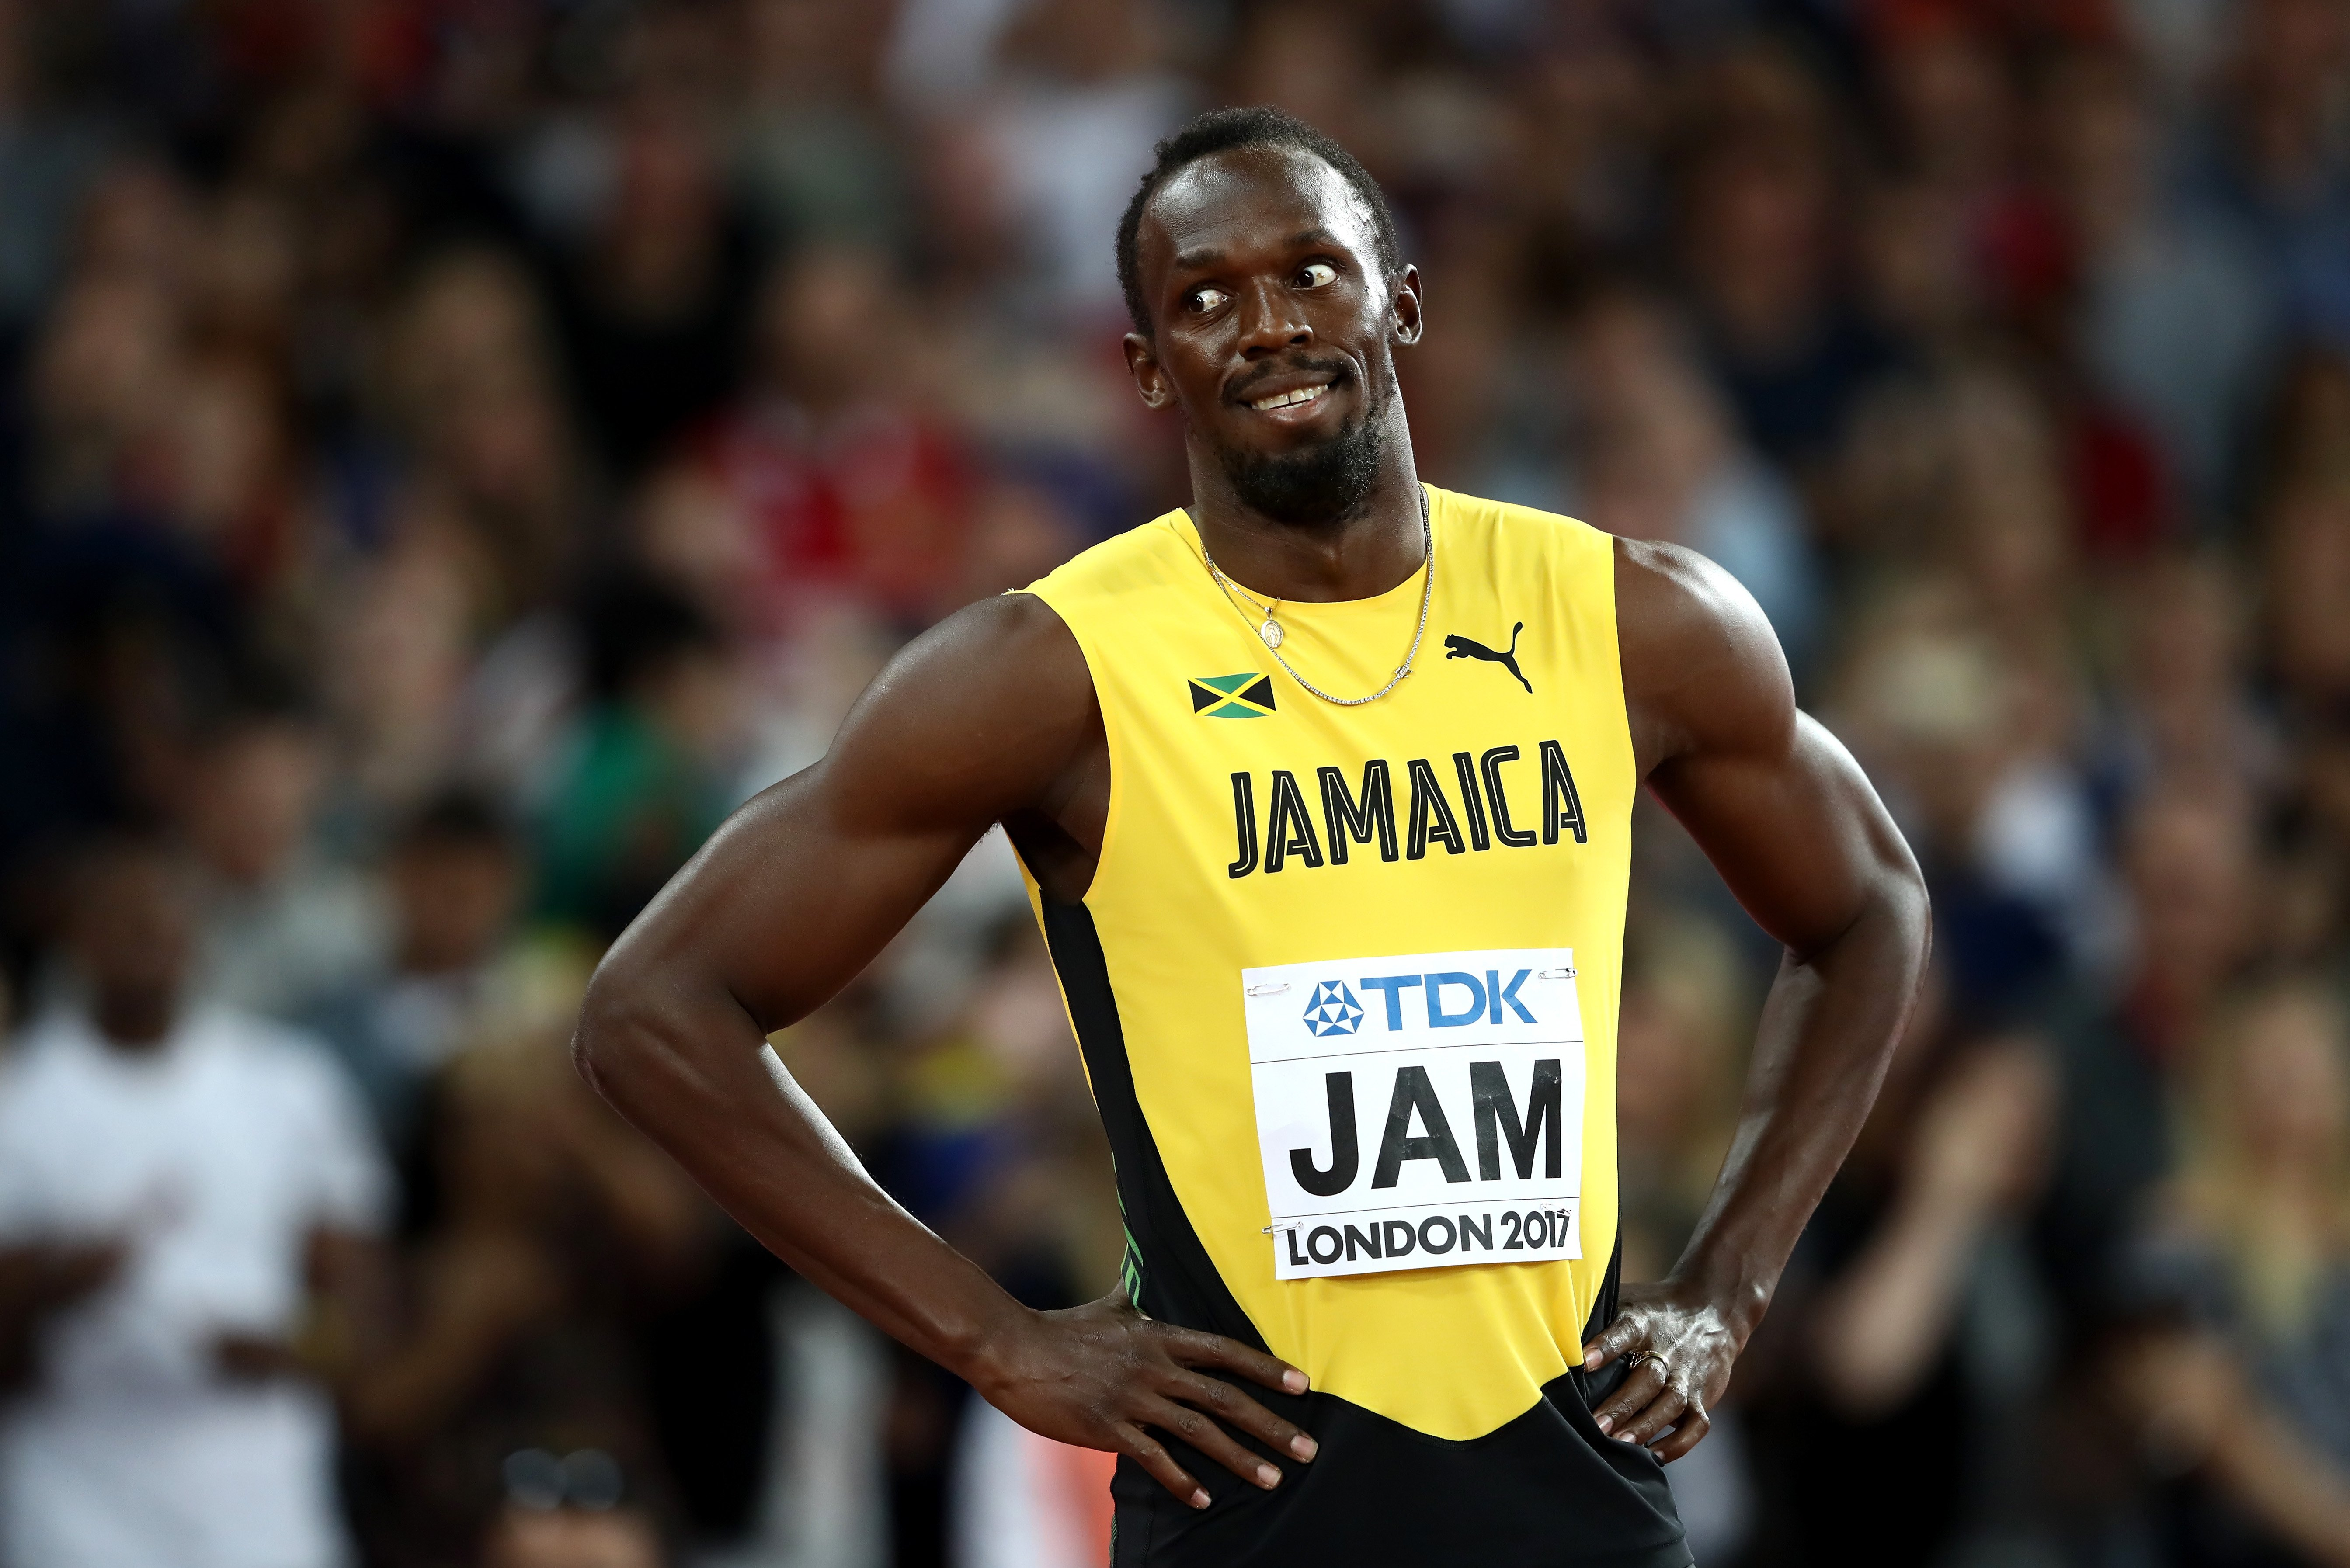 Usain Bolt at the Men's 4x100 Relay final during the 16th IAAF World Athletics Championships on August 12, 2017. | Photo: Getty Images